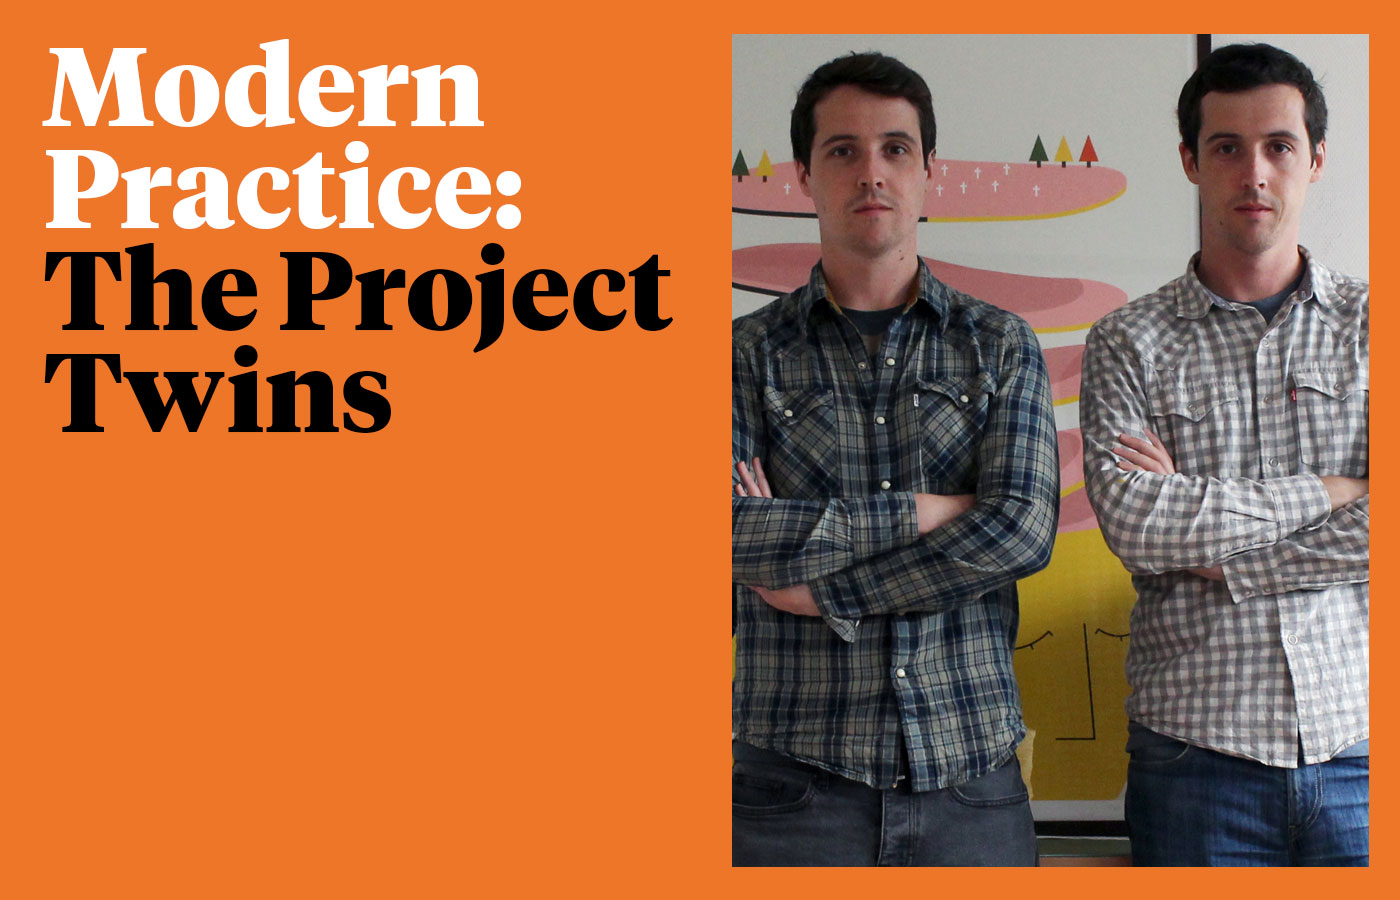 Cover image: Modern Practice - The Project Twins